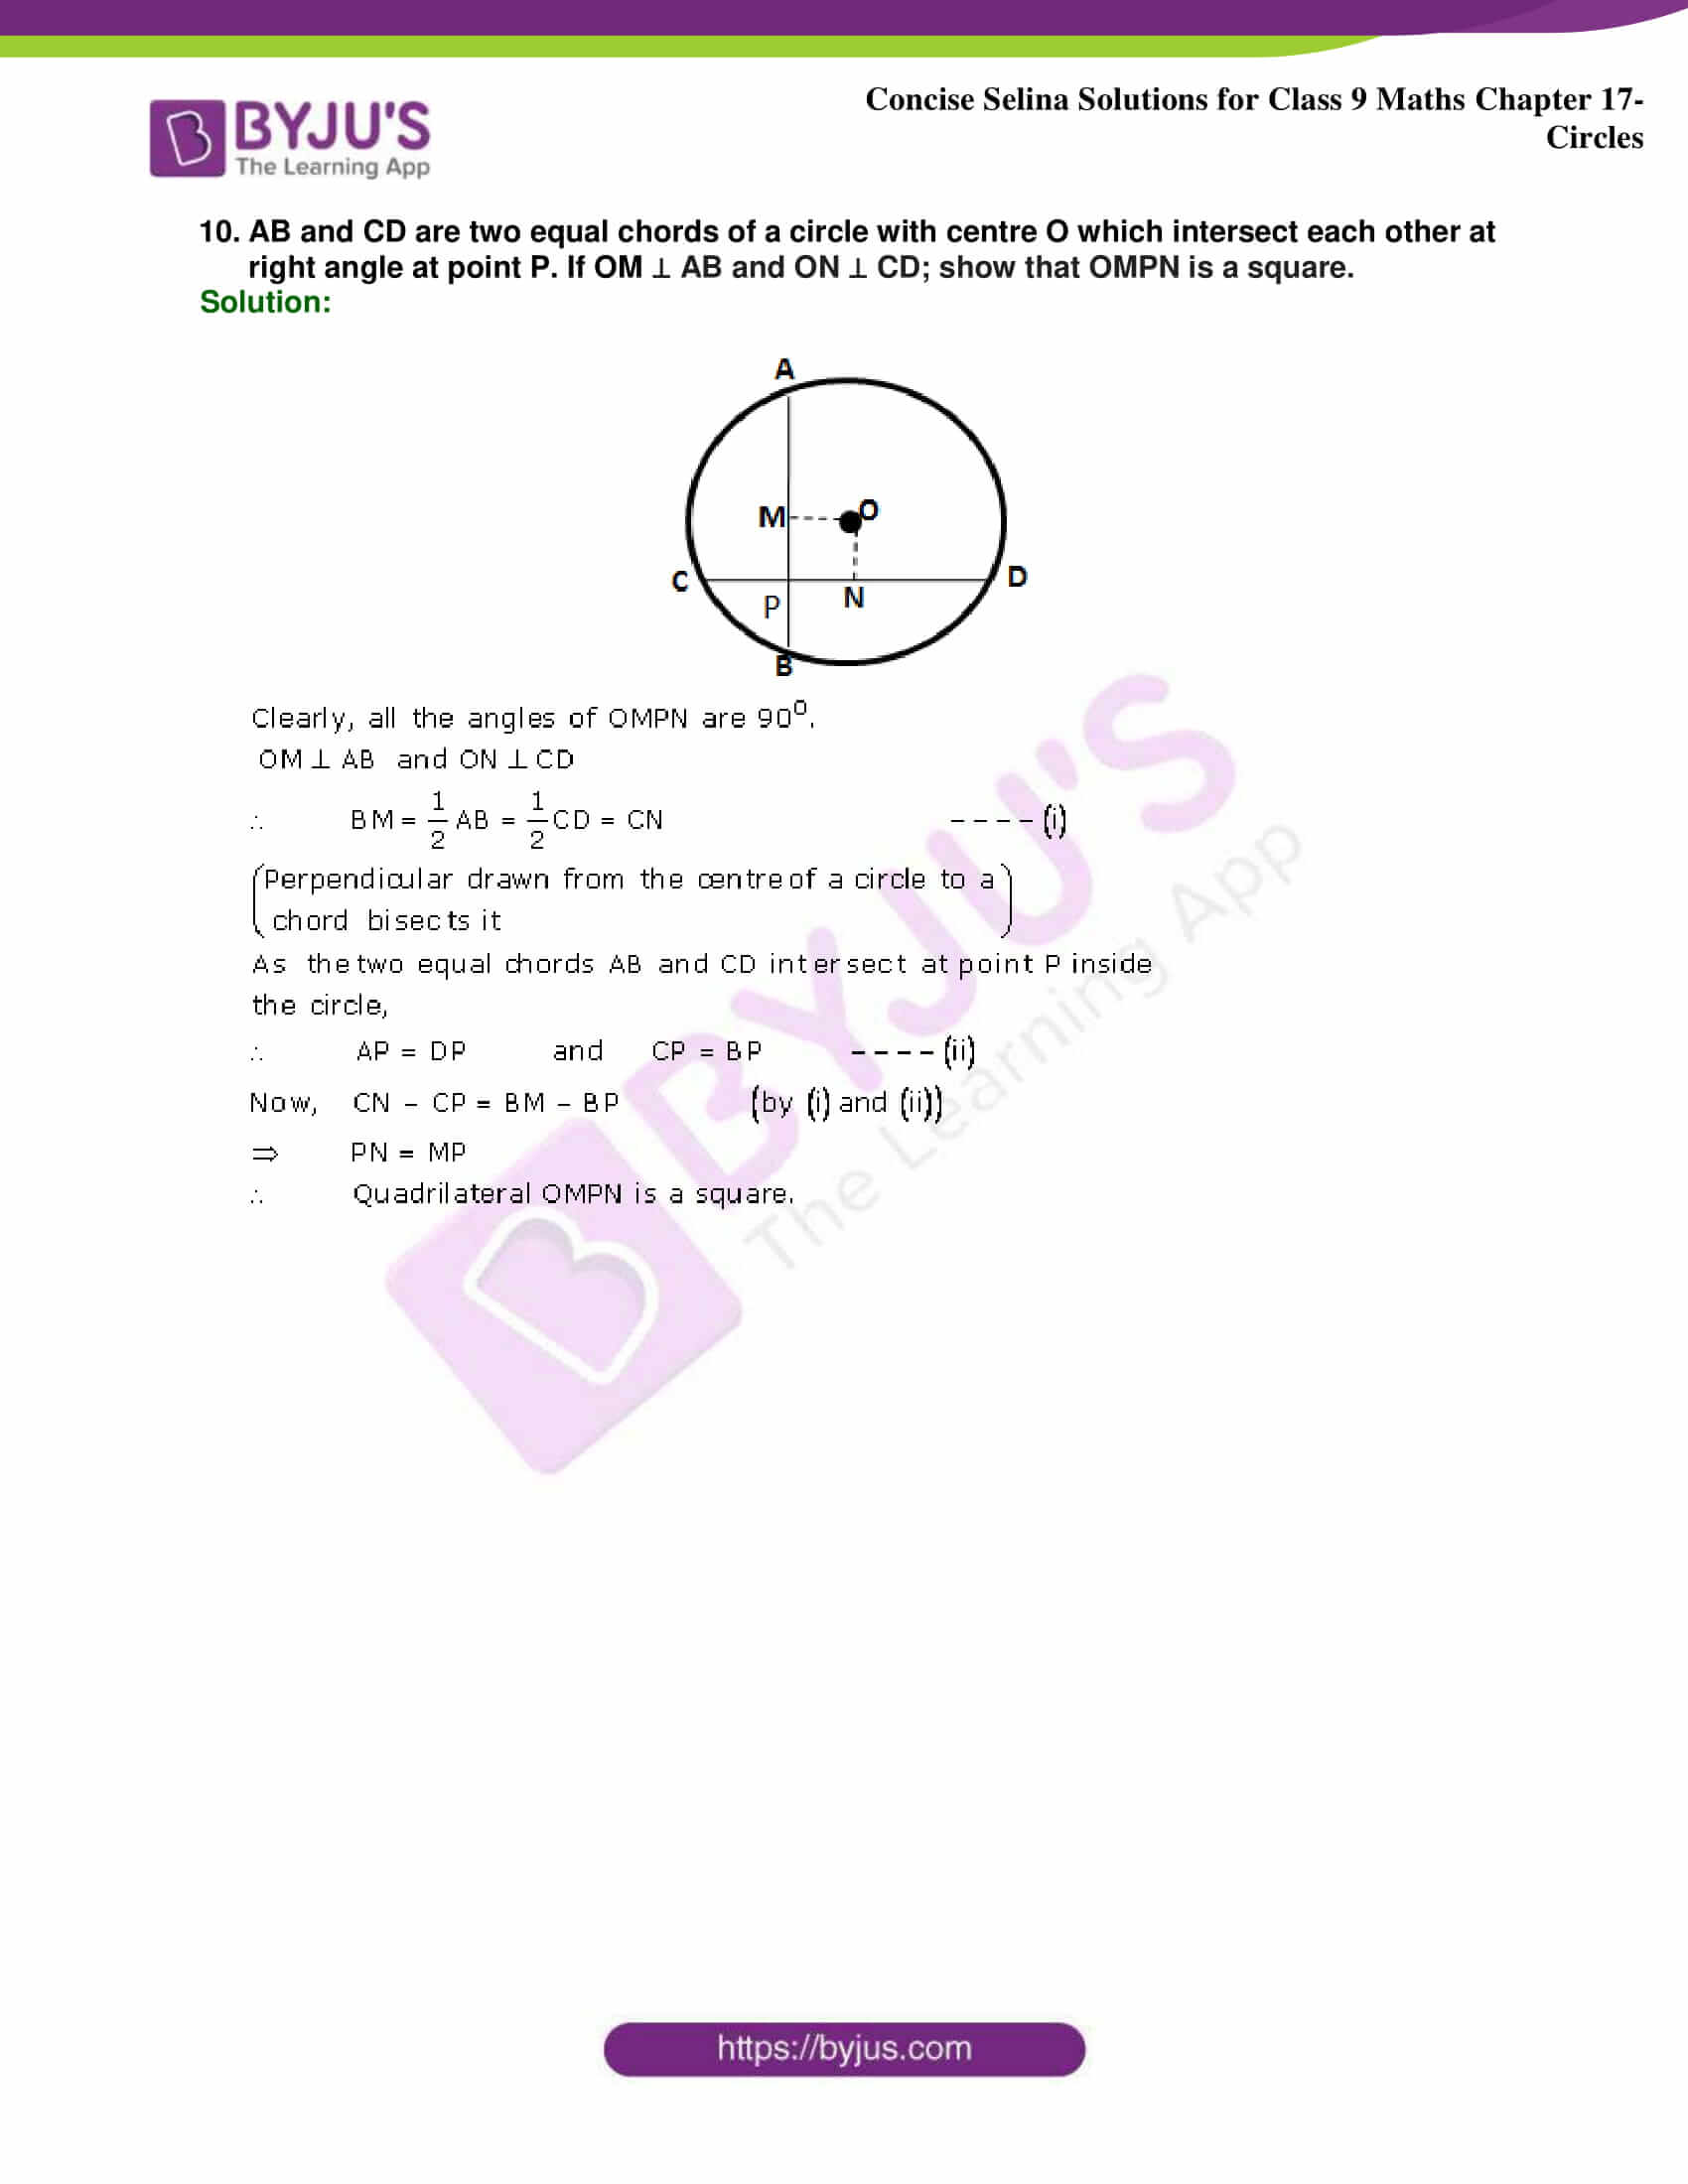 Concise Selina Solutions Class 9 Maths Chapter 17 Circles part 17